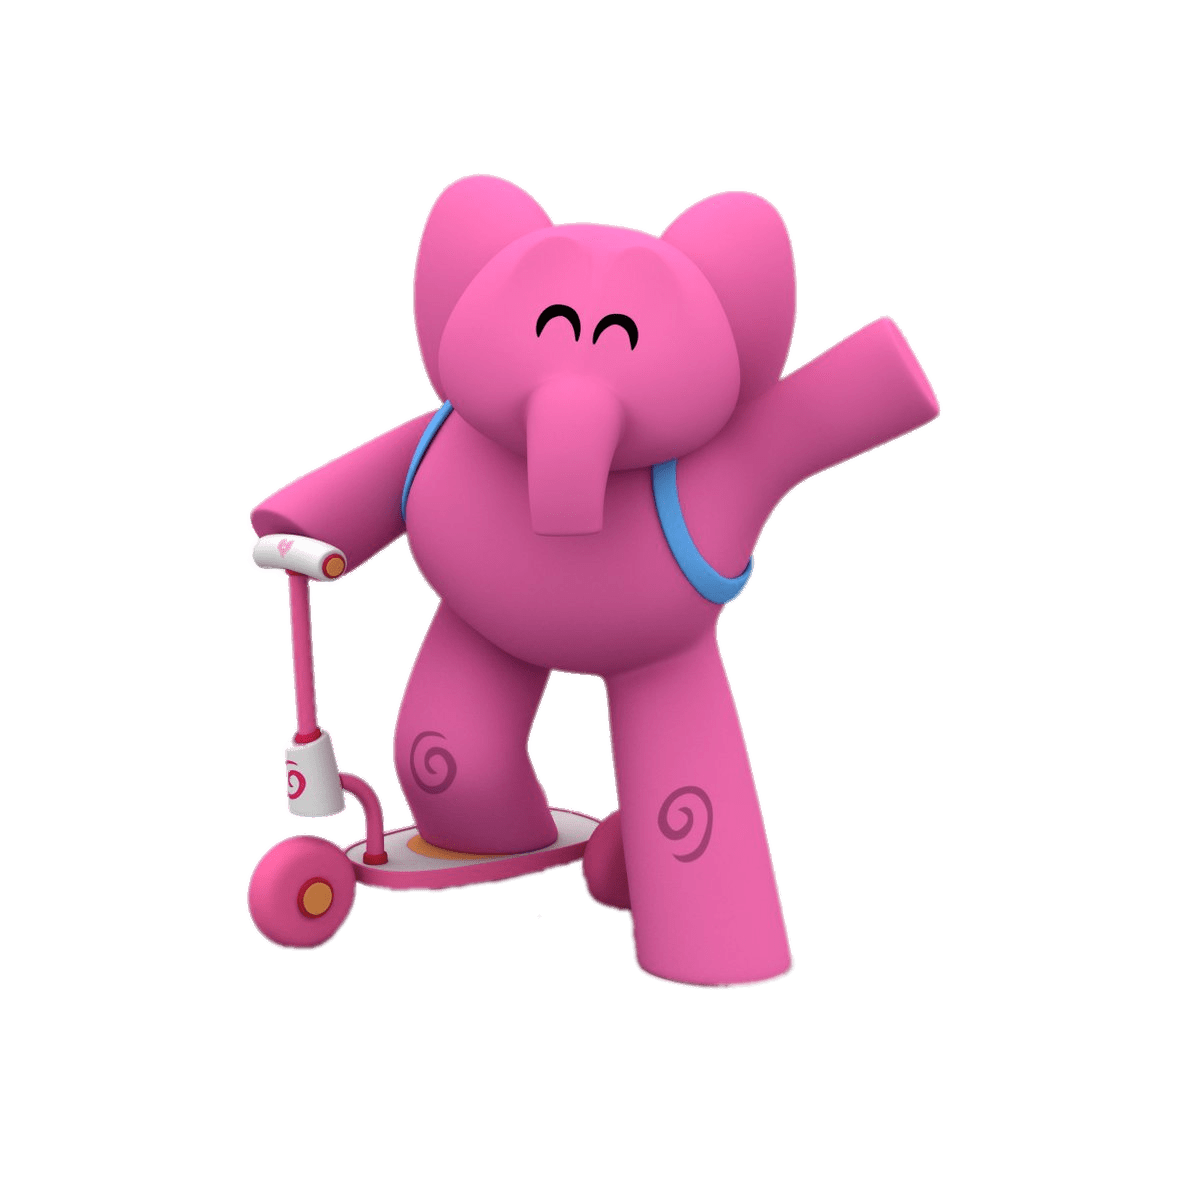 Pocoyo transparent png images. Scooter clipart pink scooter